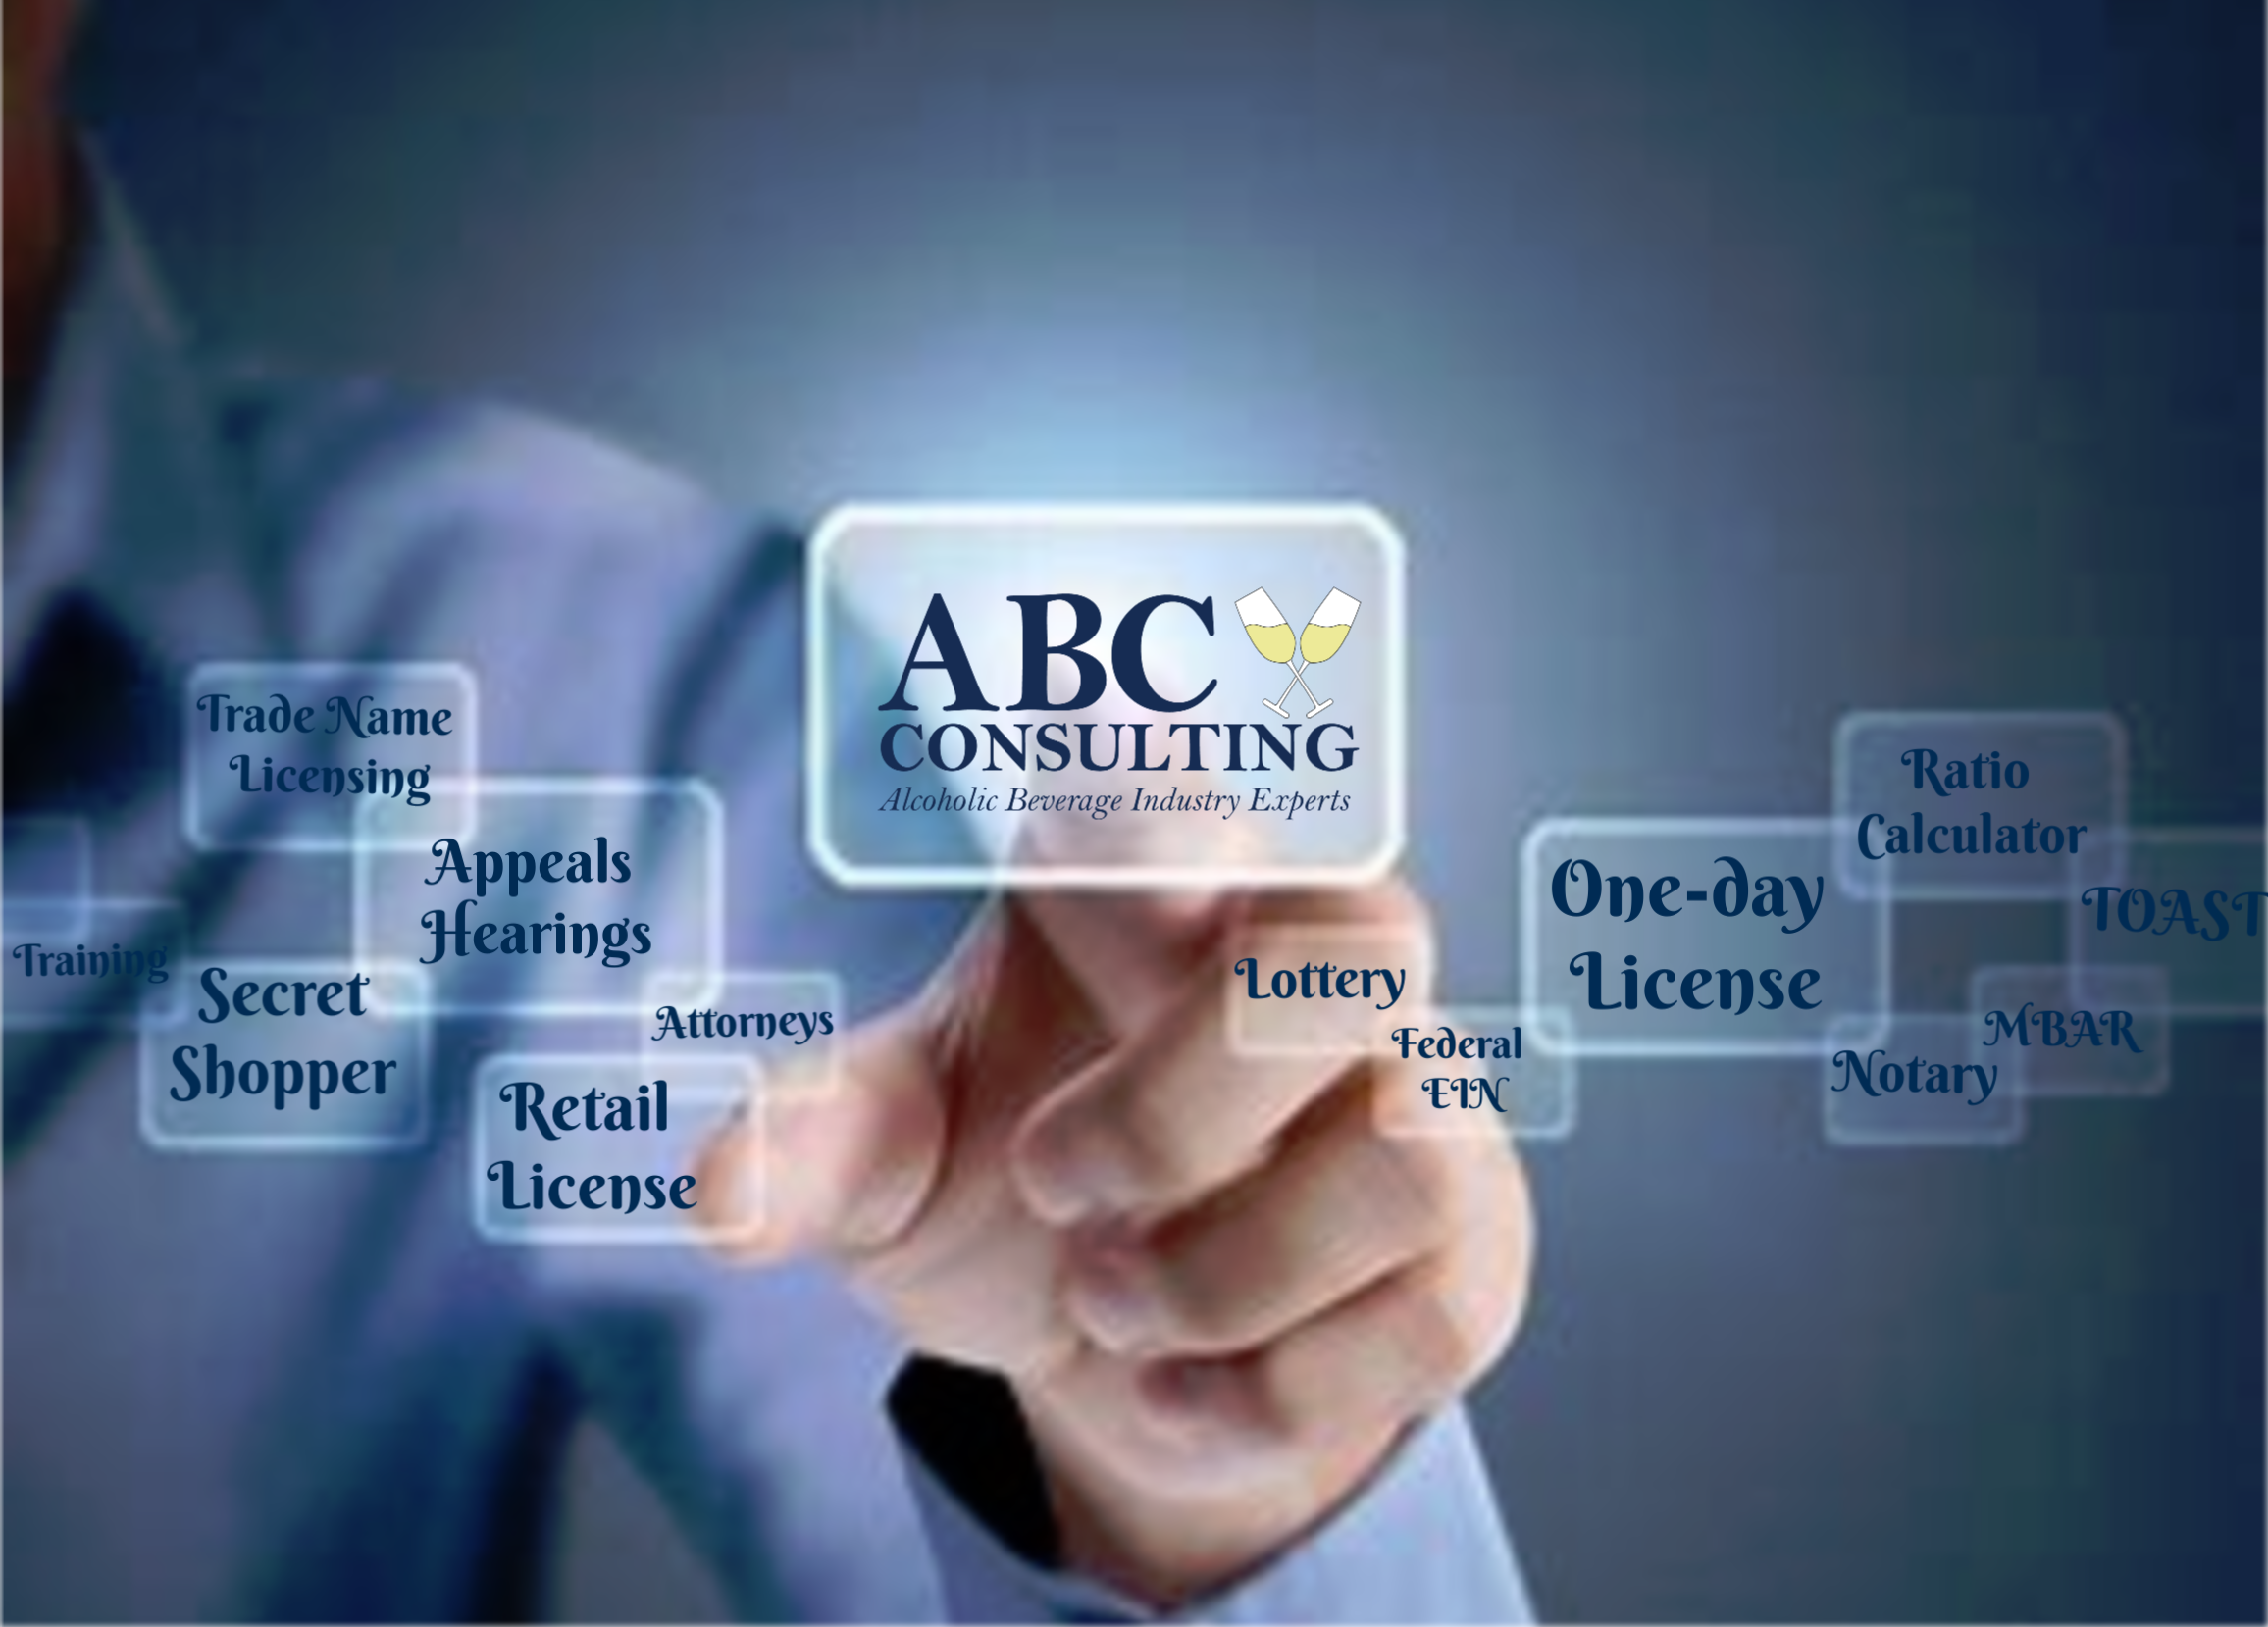 ABC Consulting - alcohol licensing